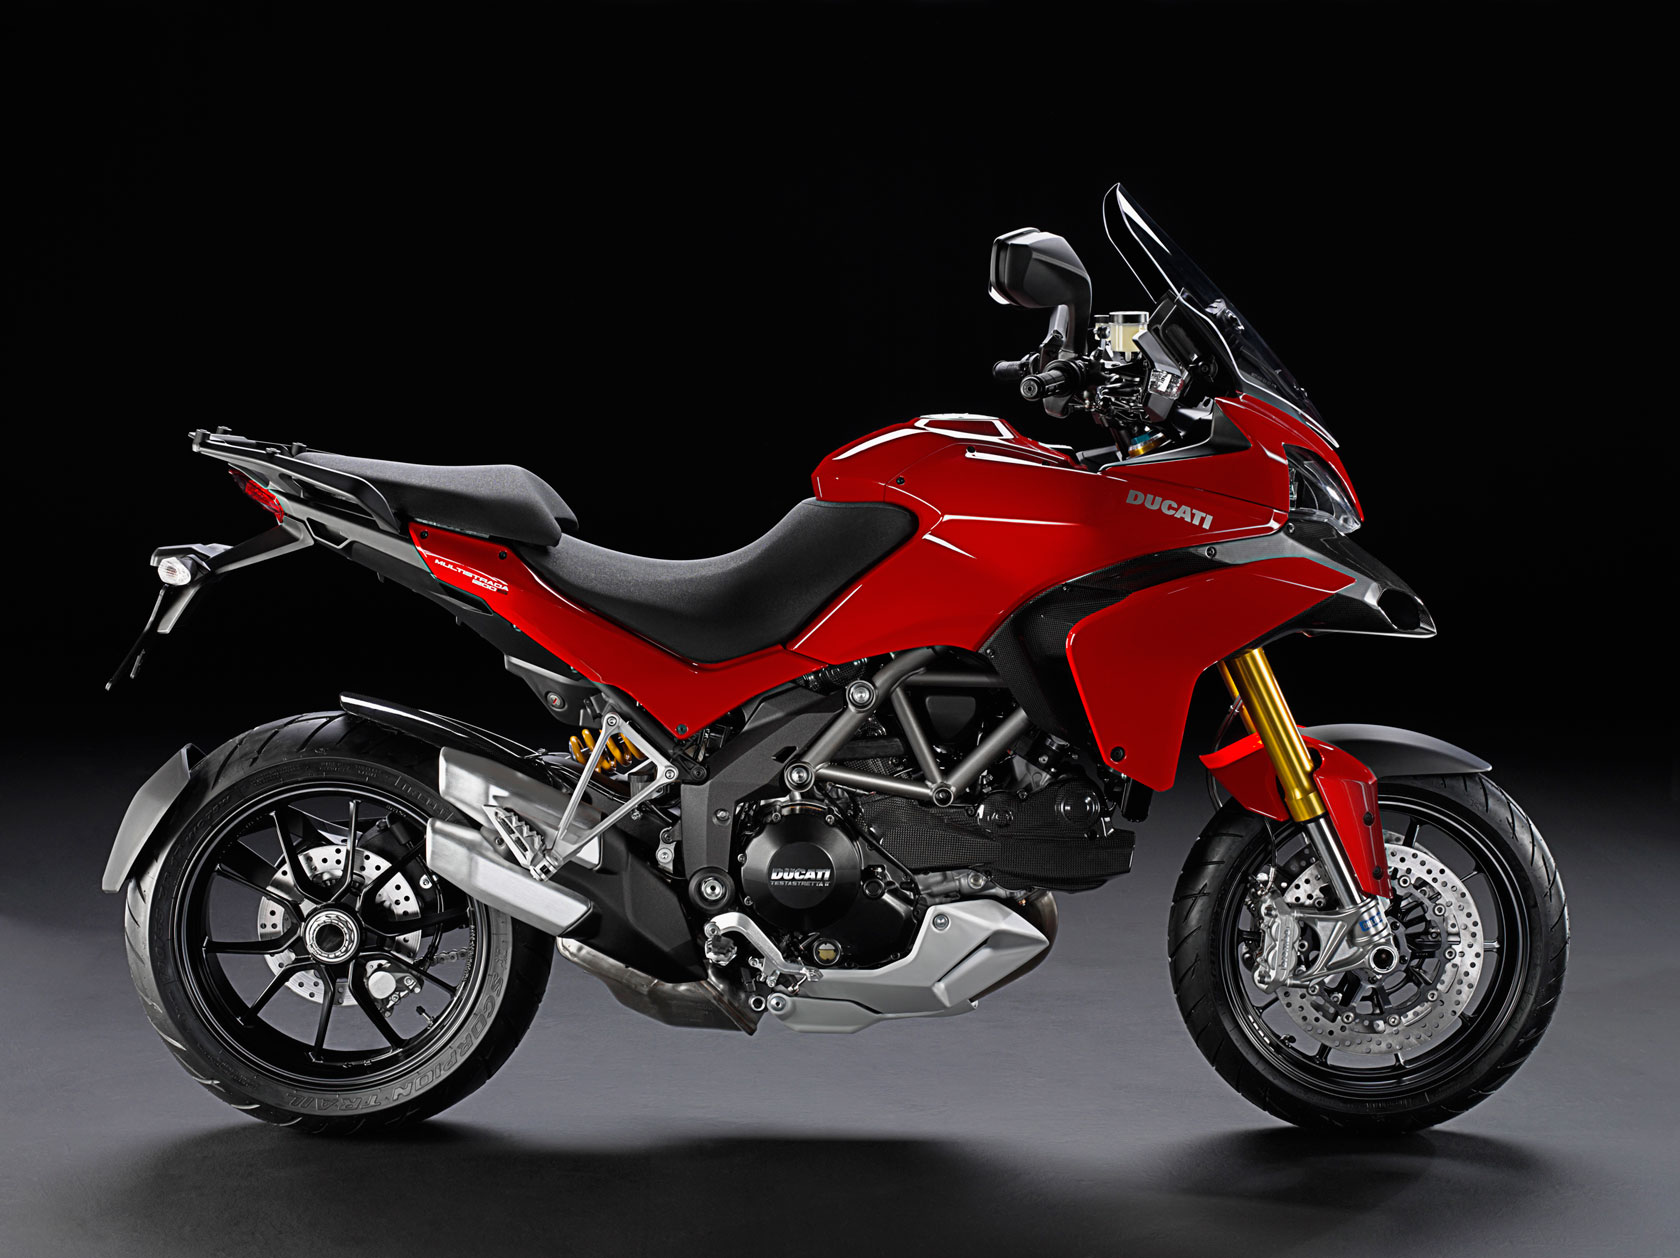 2011 ducati multistrada 1200 s sport pics specs and. Black Bedroom Furniture Sets. Home Design Ideas